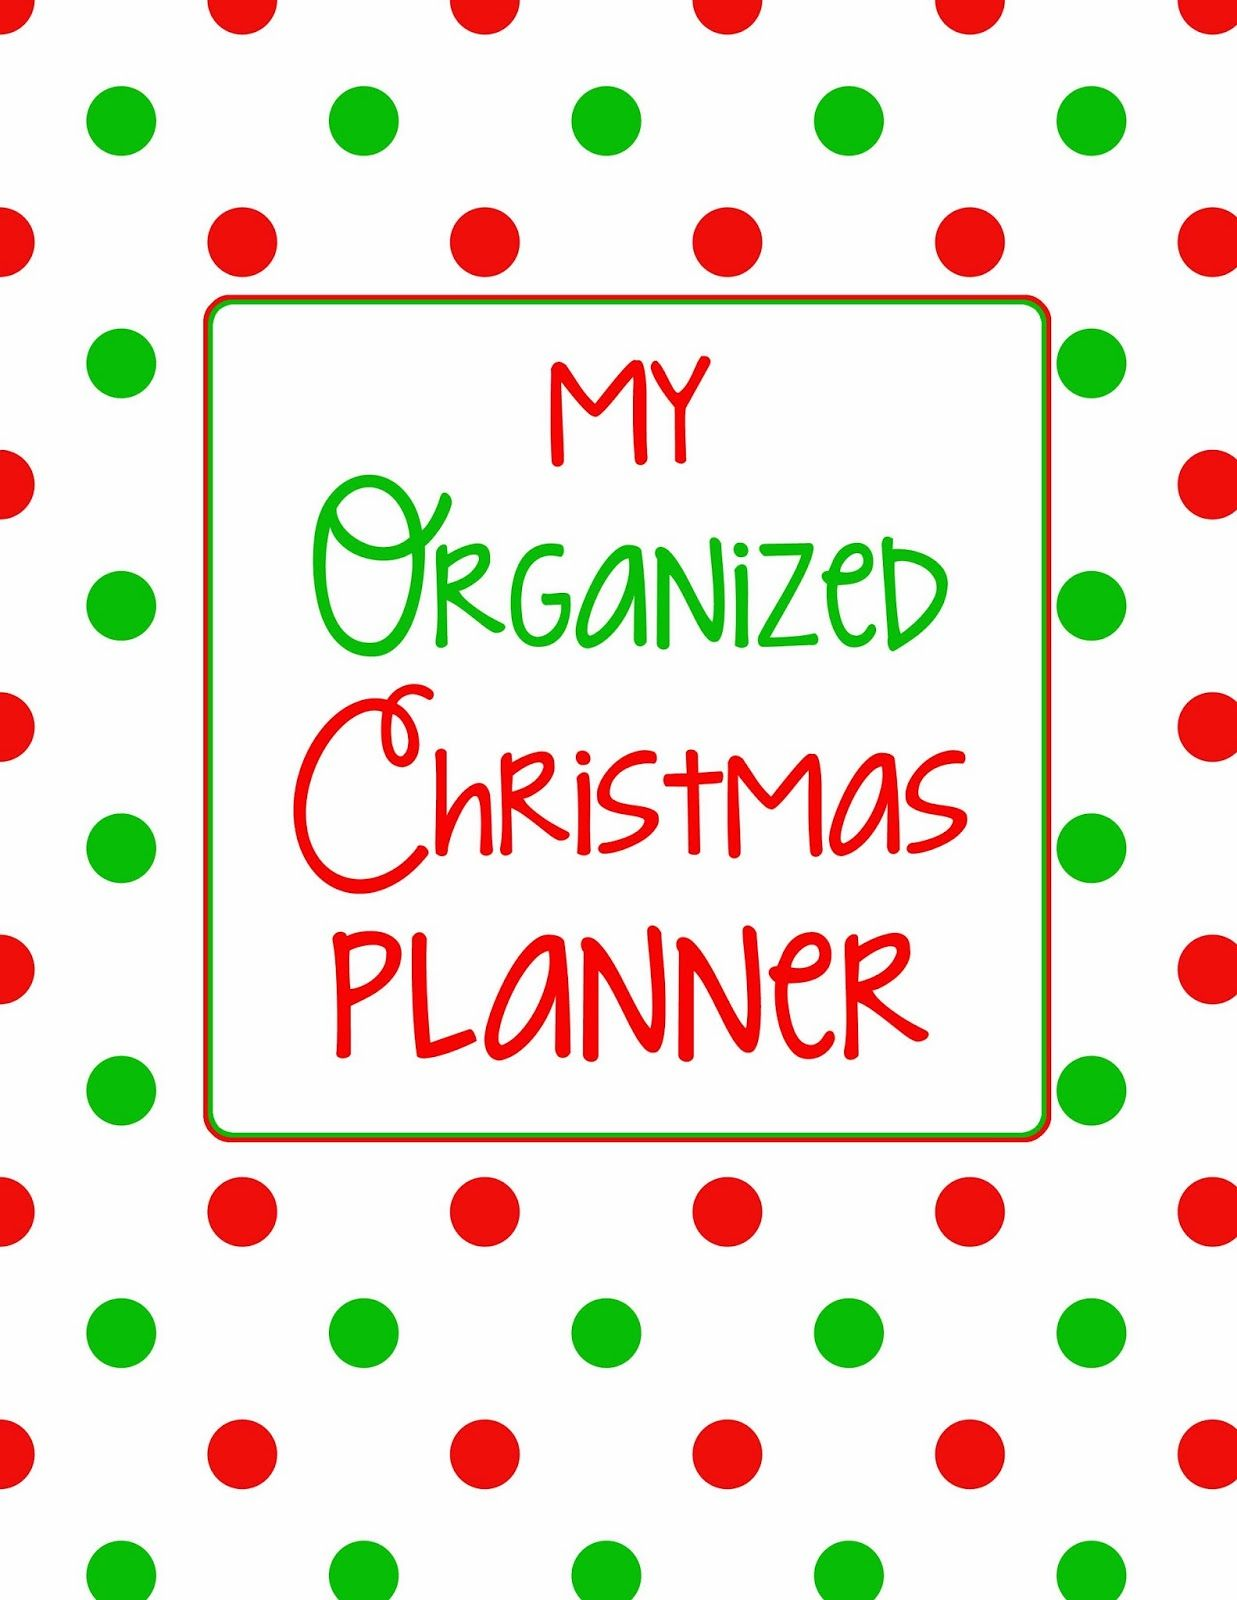 25 Days to an Organized Christmas: Create a Christmas Planner - Here Comes The Sun